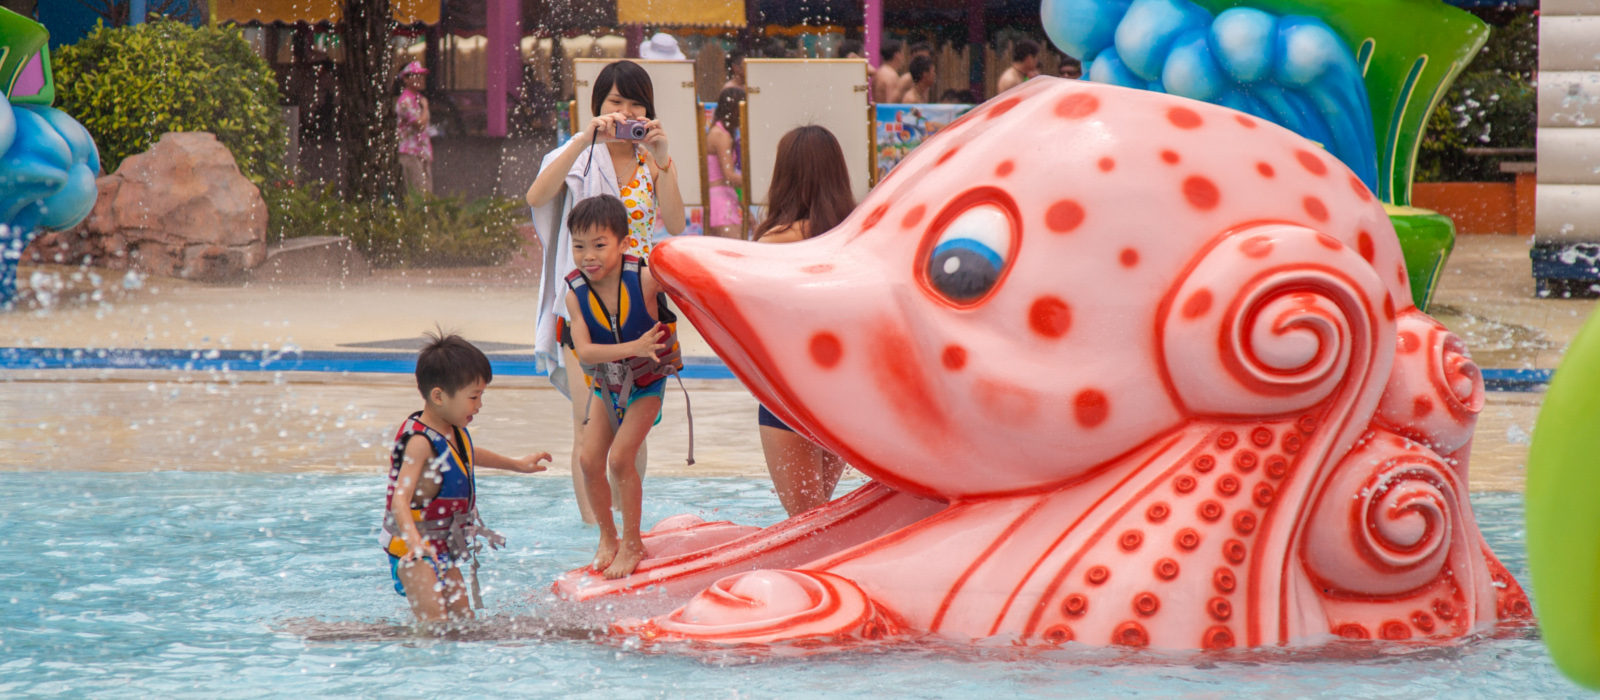 Chimelong_Waterpark_Guangzhou_China 2